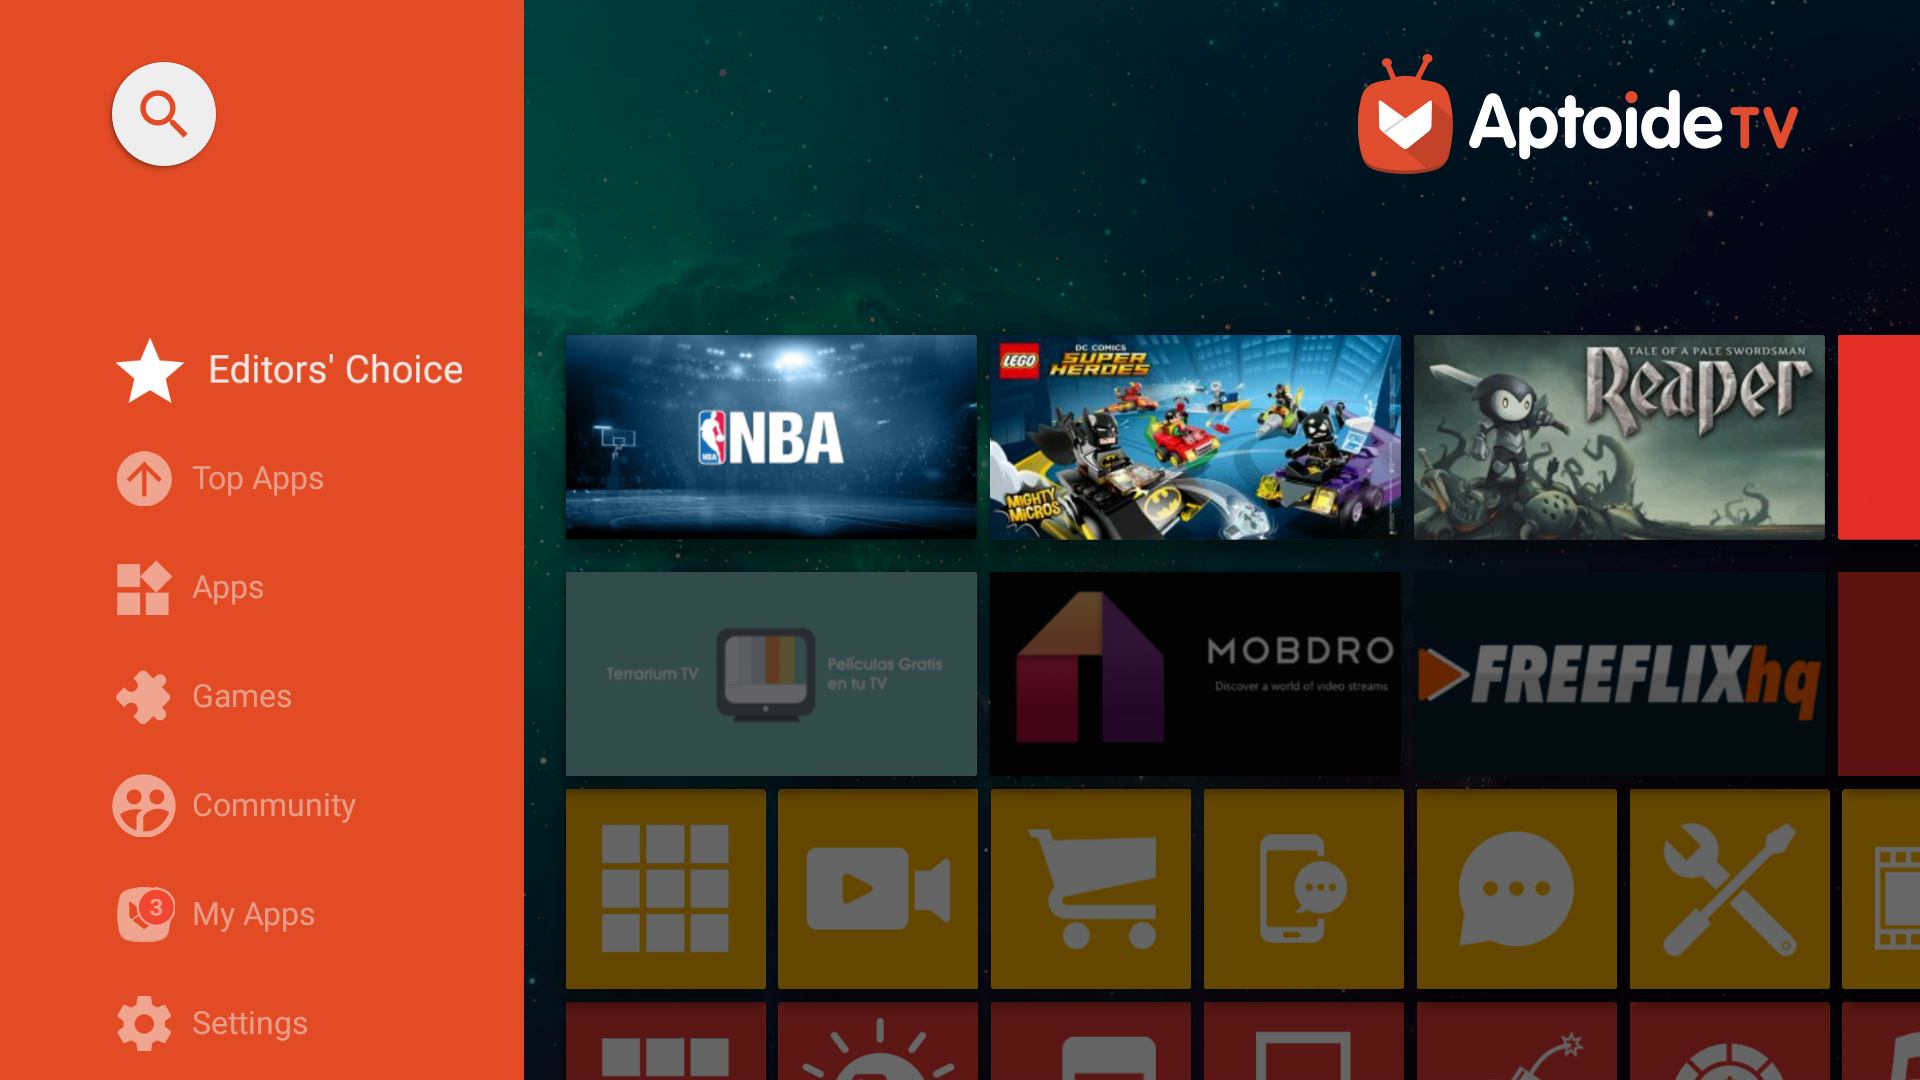 Android Aptoide TV Screen 1